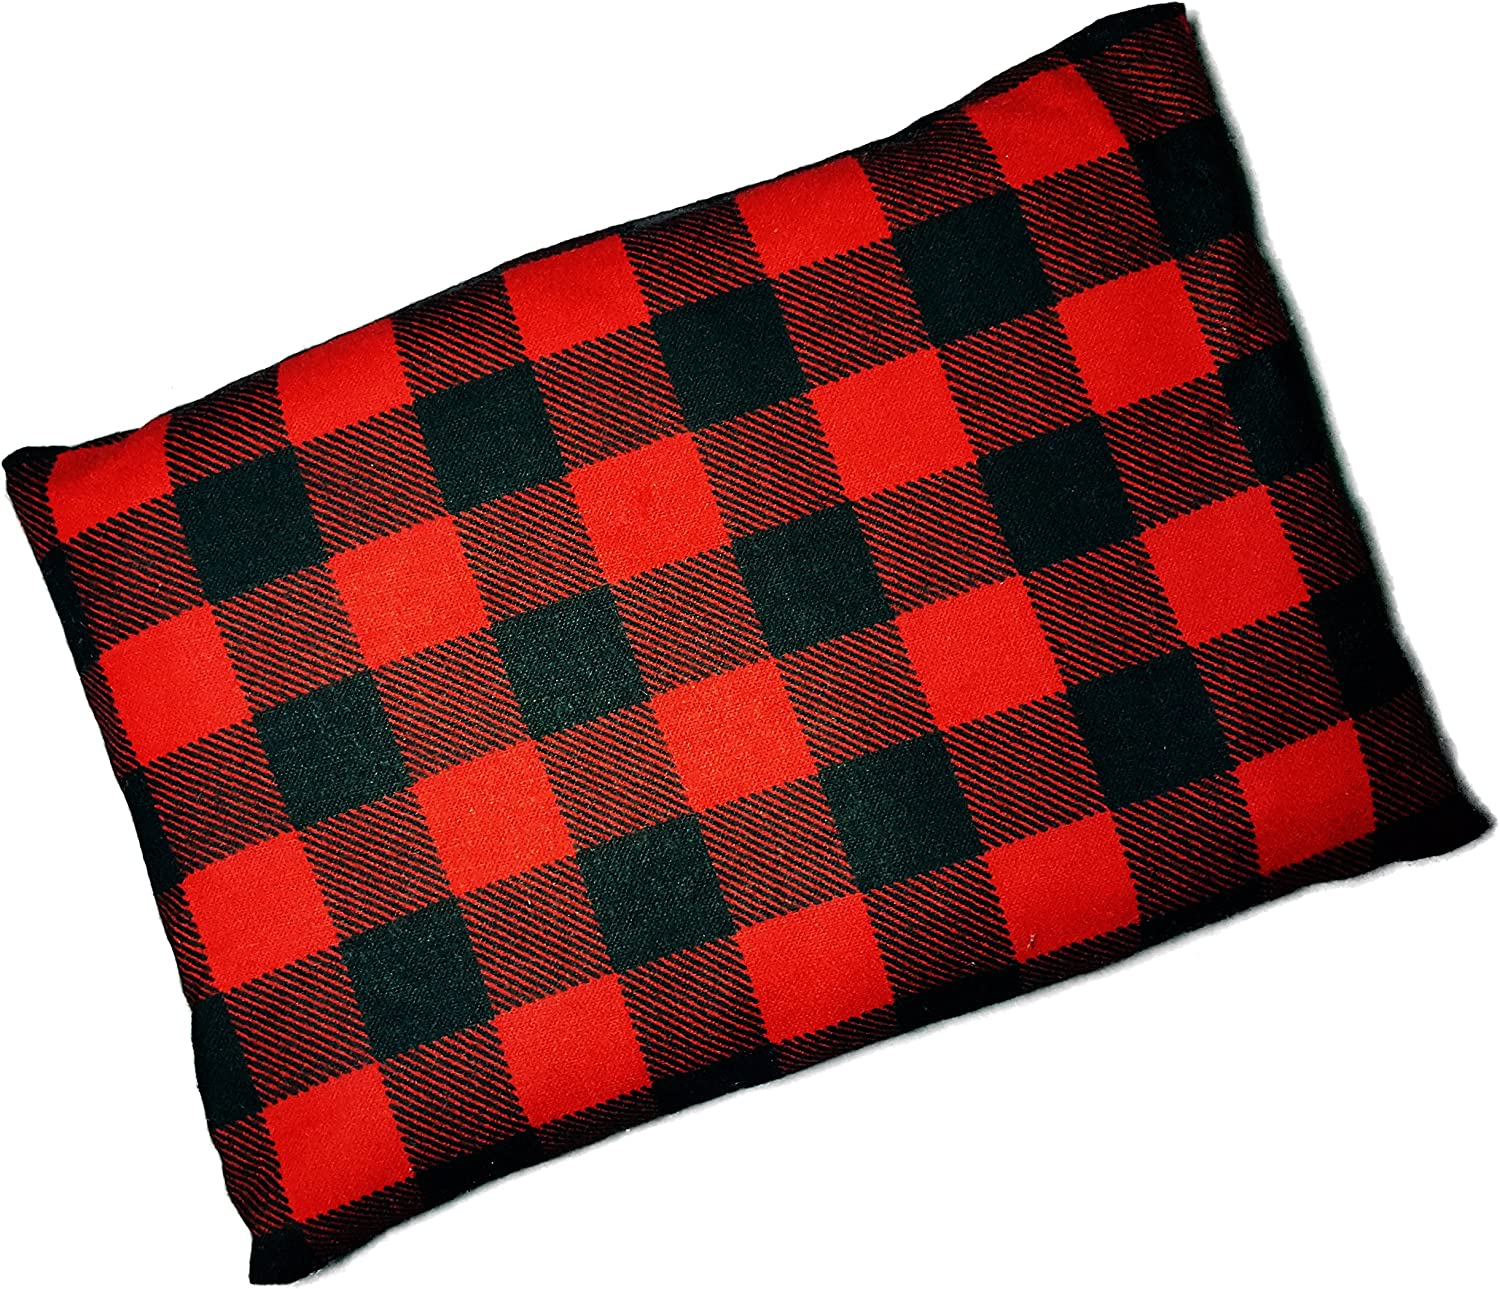 "Microwavable Corn Filled Heating Pad and Cold Pack/Washable 100% Cotton Cover (7.5""Wx11""L, Lumberjack Red)"